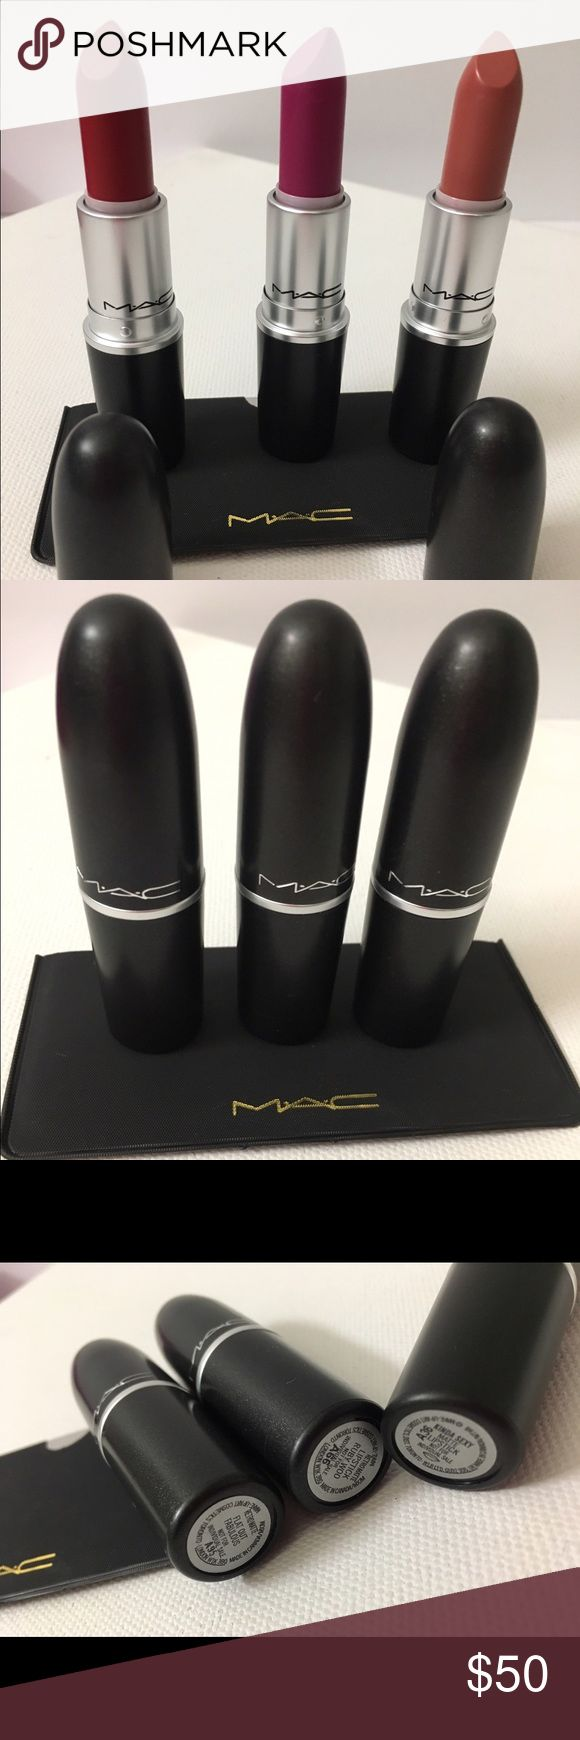 """💯Mac Matte X3 Rubywoo/Flatoutfabulous/Kinda sexy Authentic brand new ! X3 Retro Matte bundle  .  BNNB"""" Comes with gifts 👍🏼💄✨✨ not separating . Make offer w/button dolls NO LOWBALLS ! My closet is worth the $$ I promise xo Marie b Lena 😘💄💋💋✨✨✨✨💫 MAC Cosmetics Makeup Lipstick"""